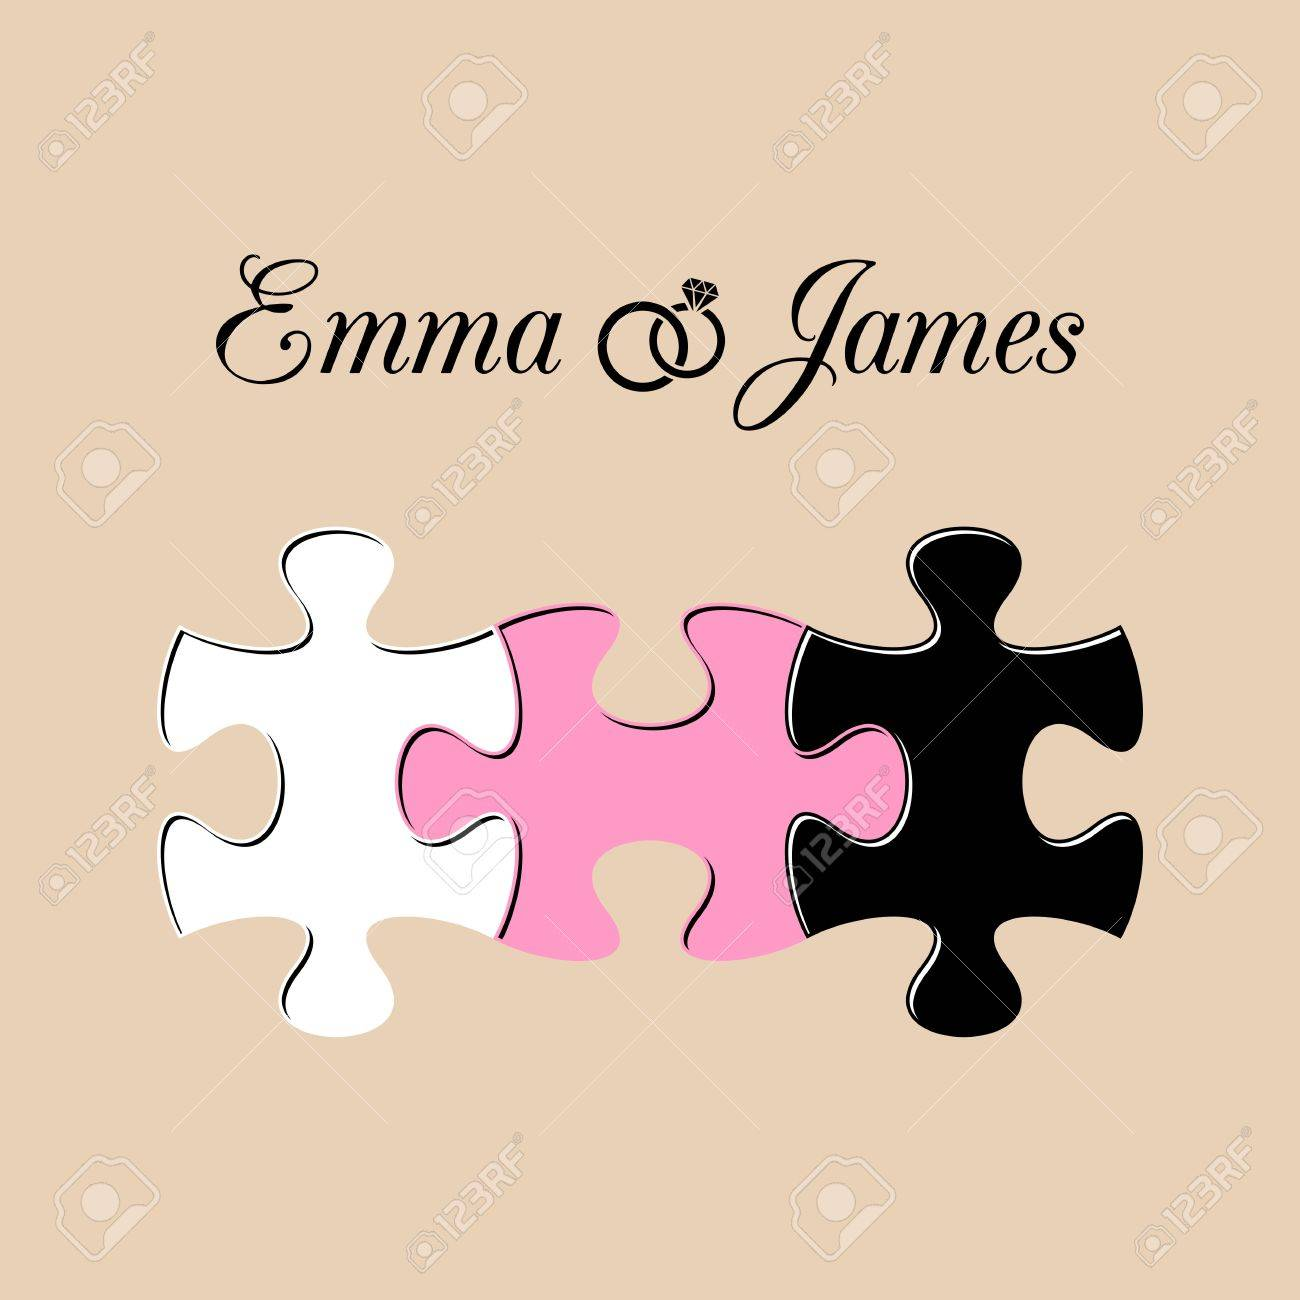 Simple Wedding Invitation With Three Joined Puzzle Pieces Stock Vector